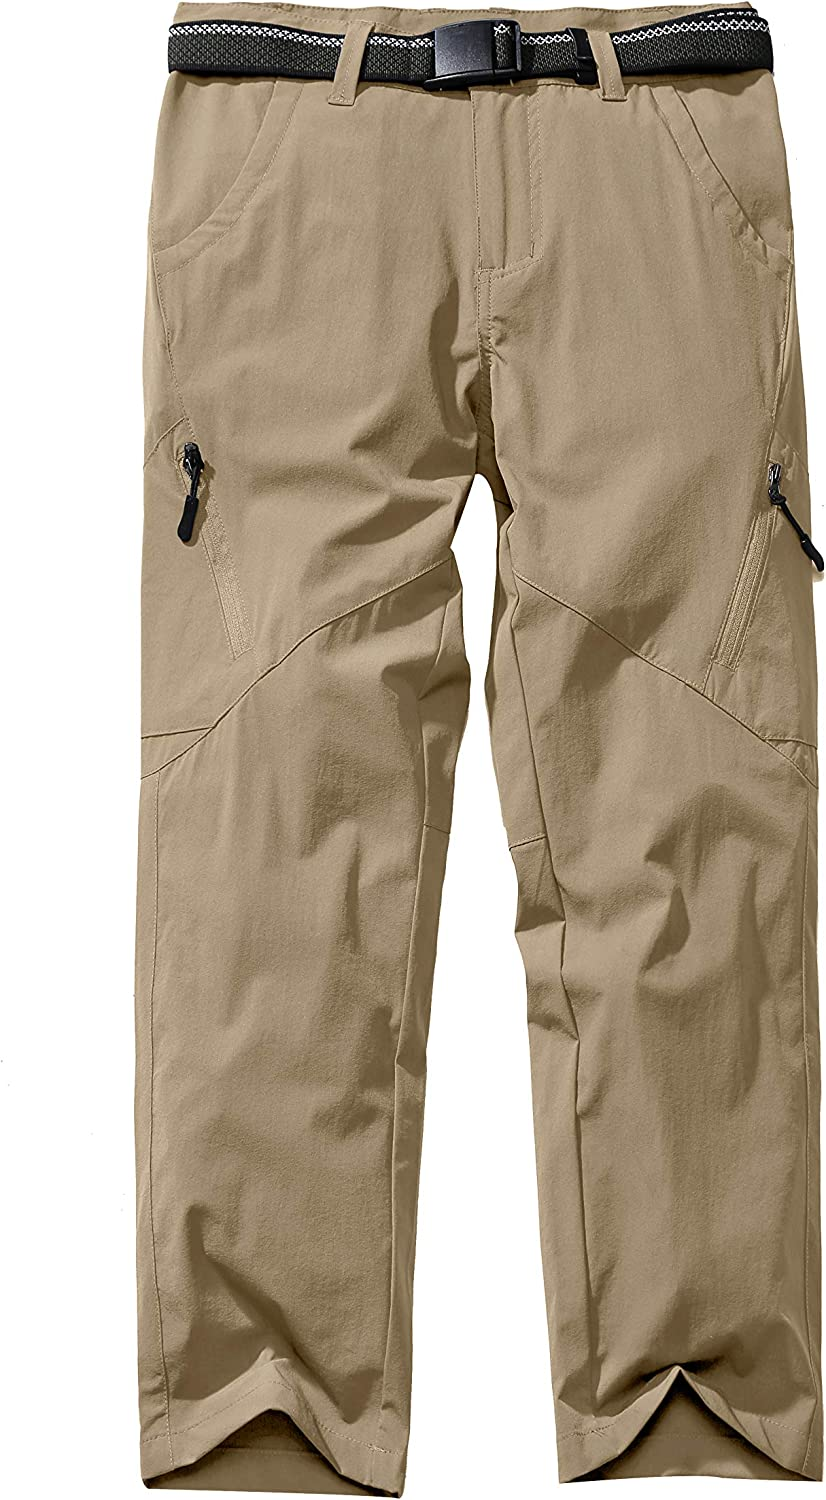 Asfixiado Boys Cargo Pants Kids Youth Girls Outdoor Quick Dry Hiking Convertible Trousers